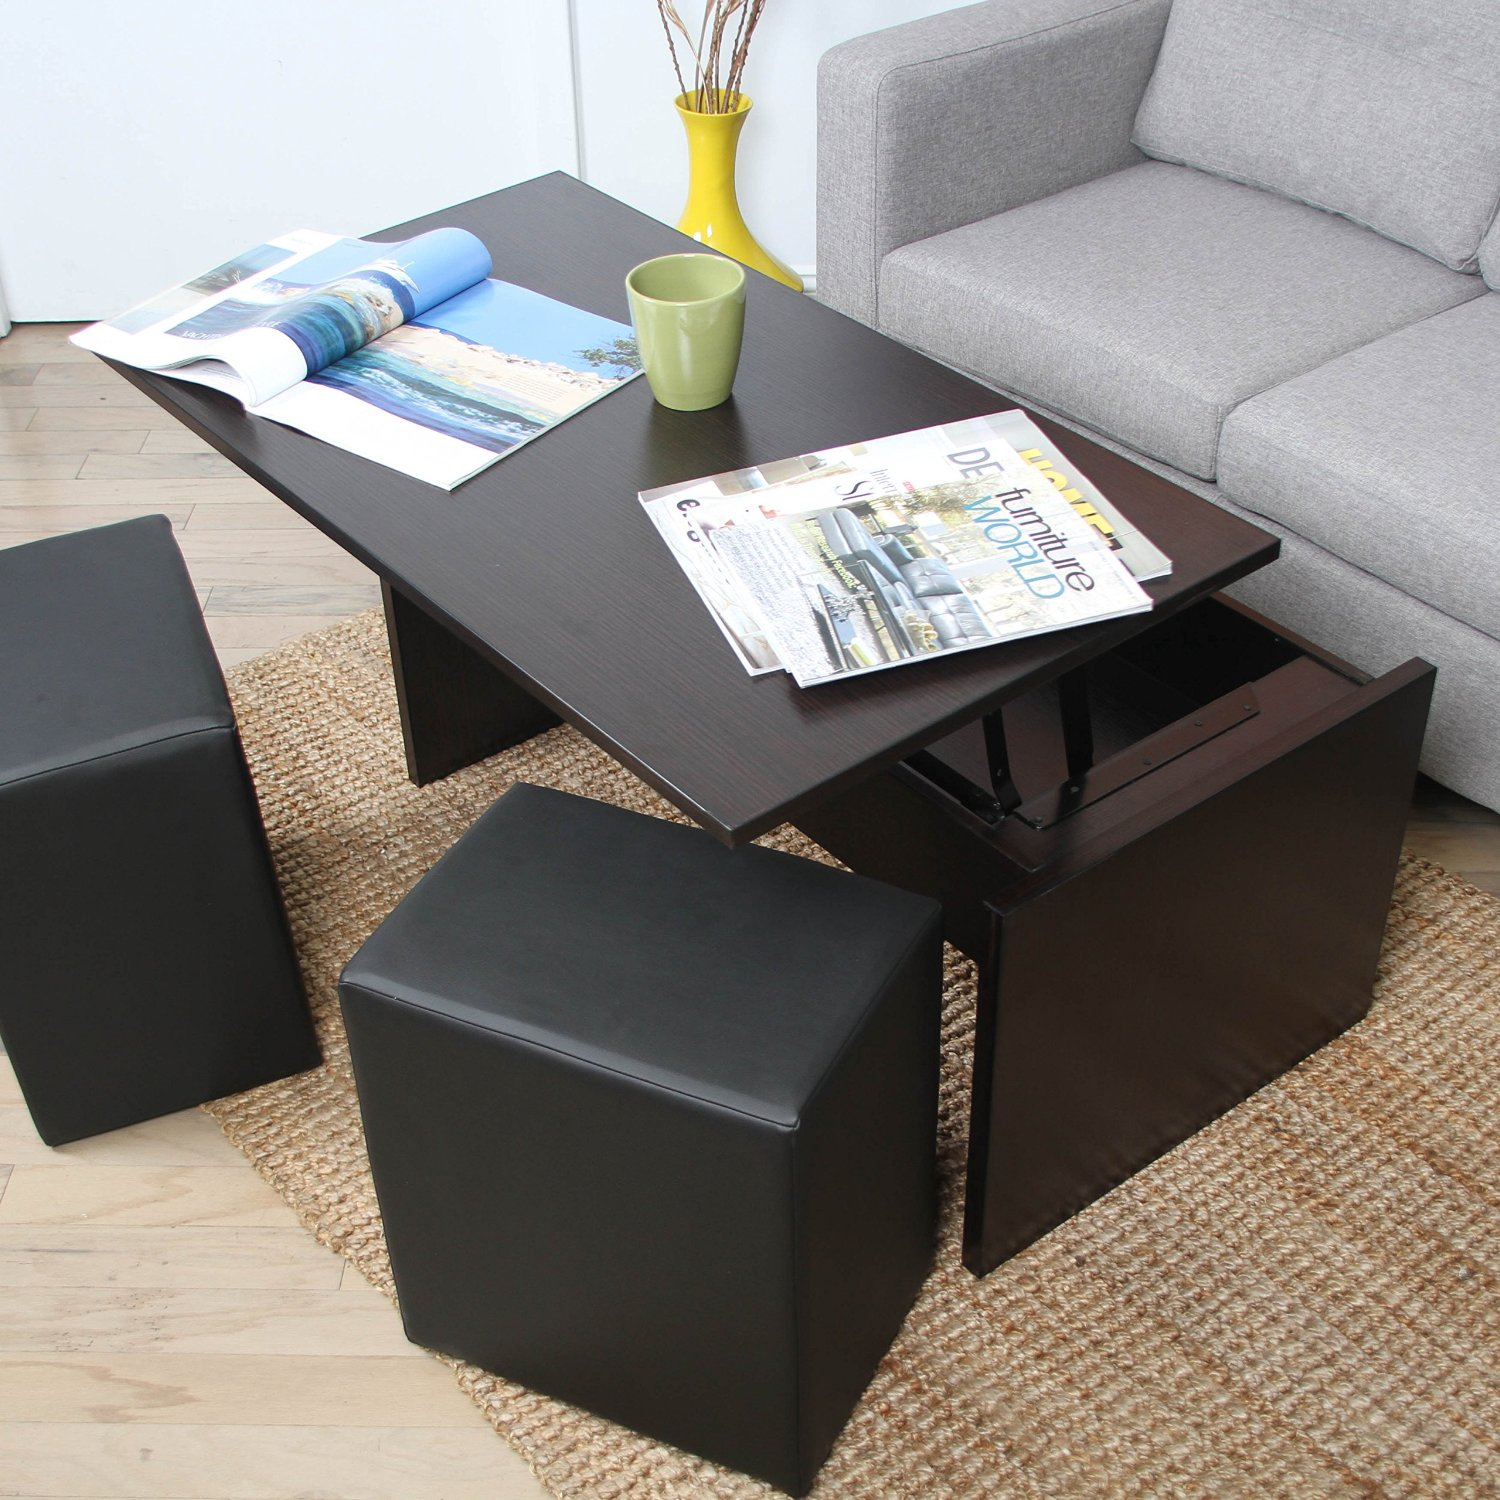 Form Function Tail And Coffee Tables With Ottomans Underneath